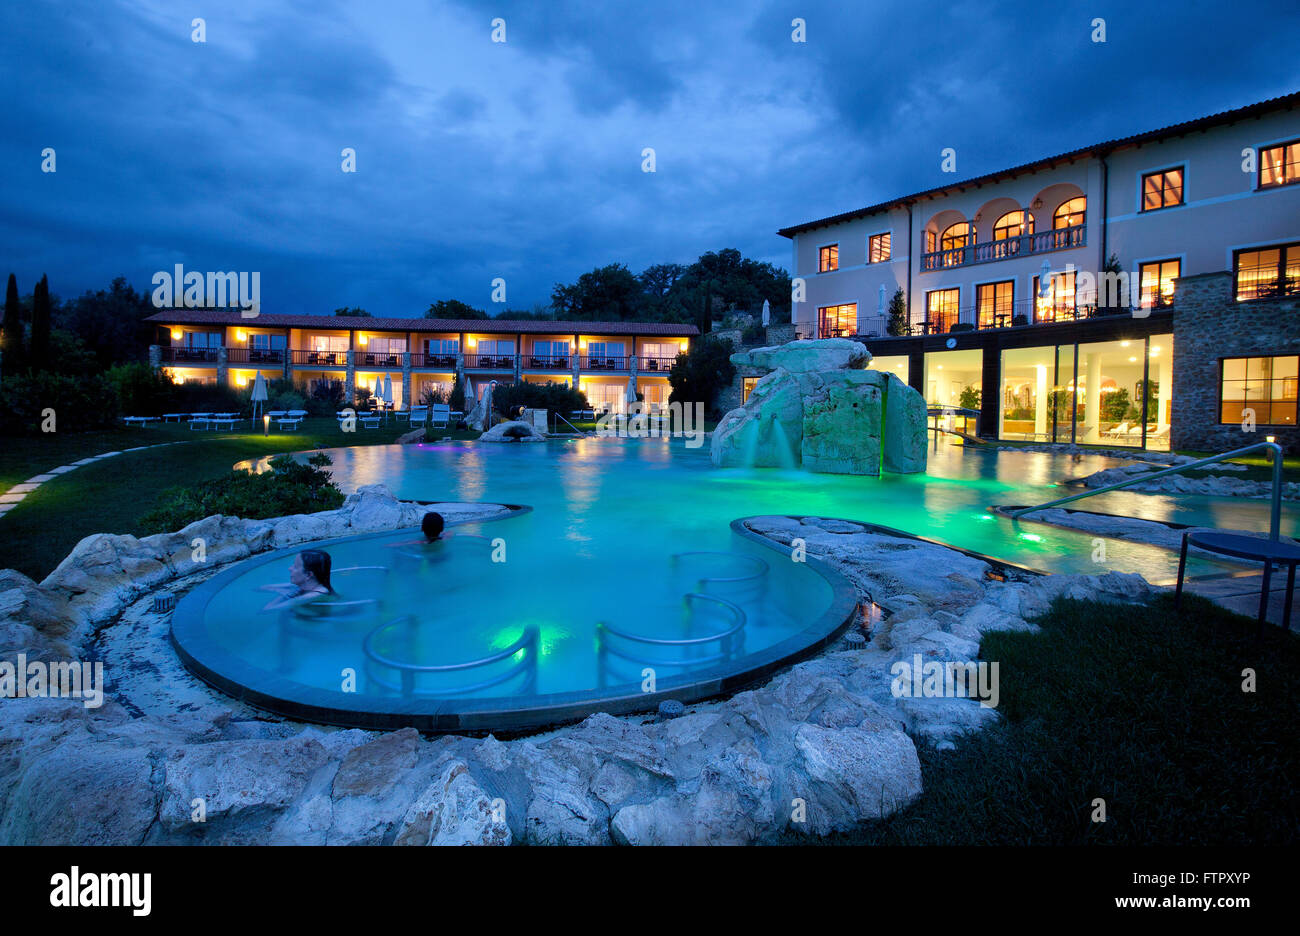 hotel adler thermae spa relax resortbagno vignonitoscana